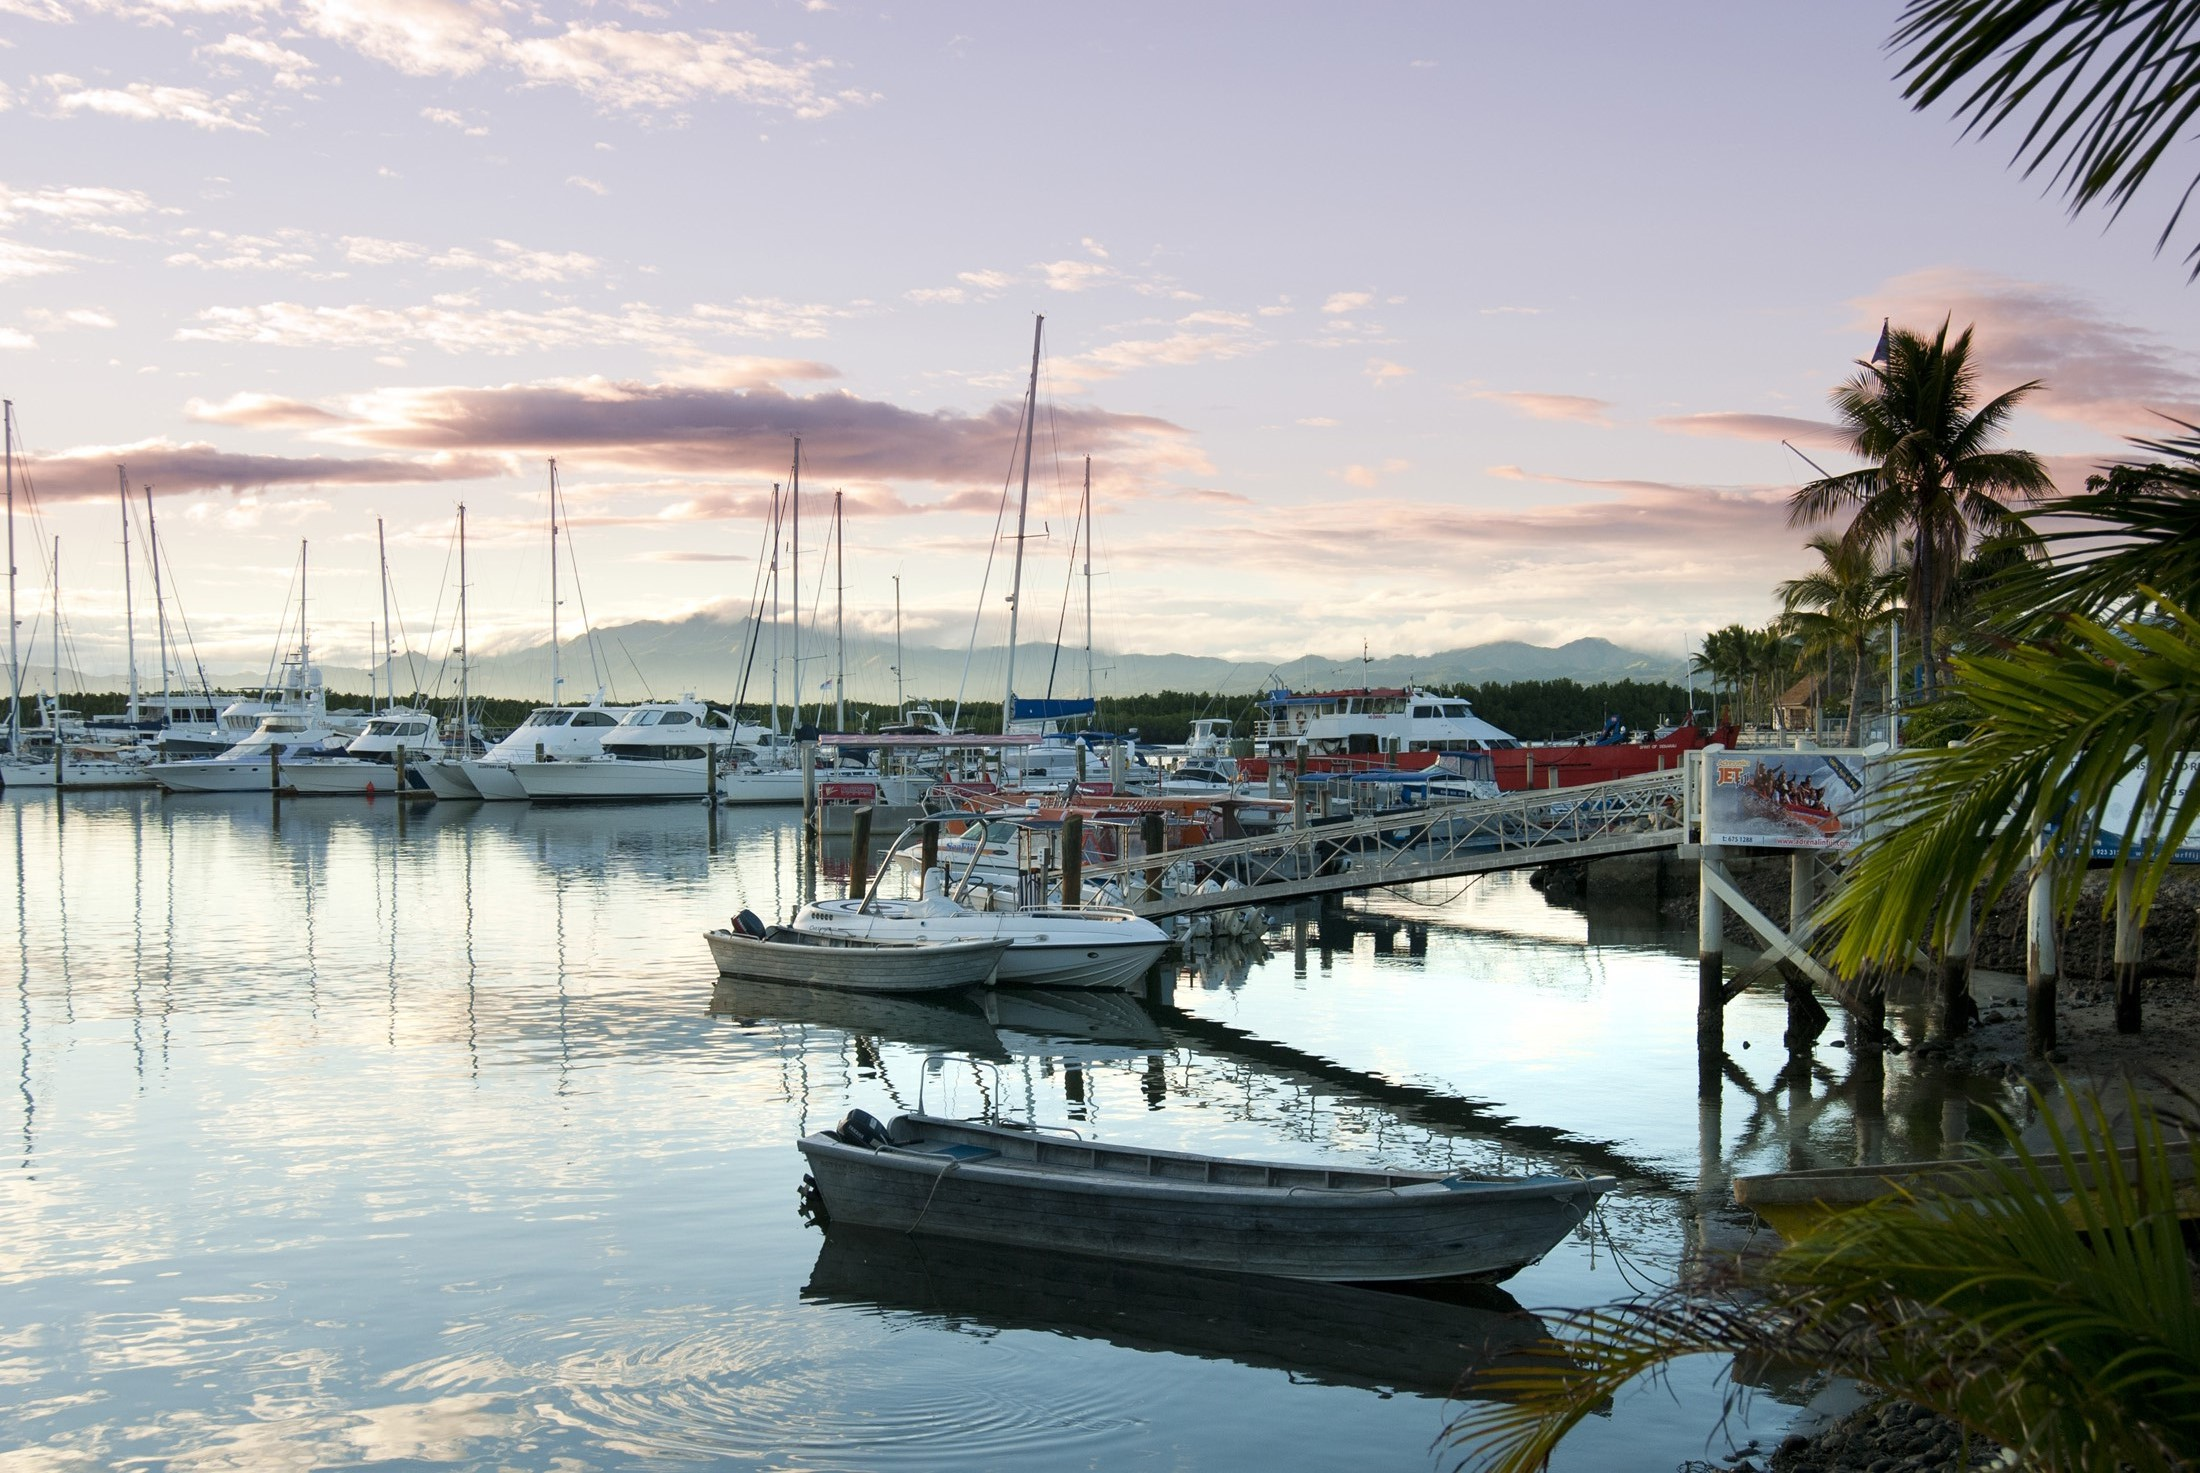 Beautiful delicate pink sunset over Denarau Marina, Fiji, with pleasure boats and yachts moored in the sheltered water